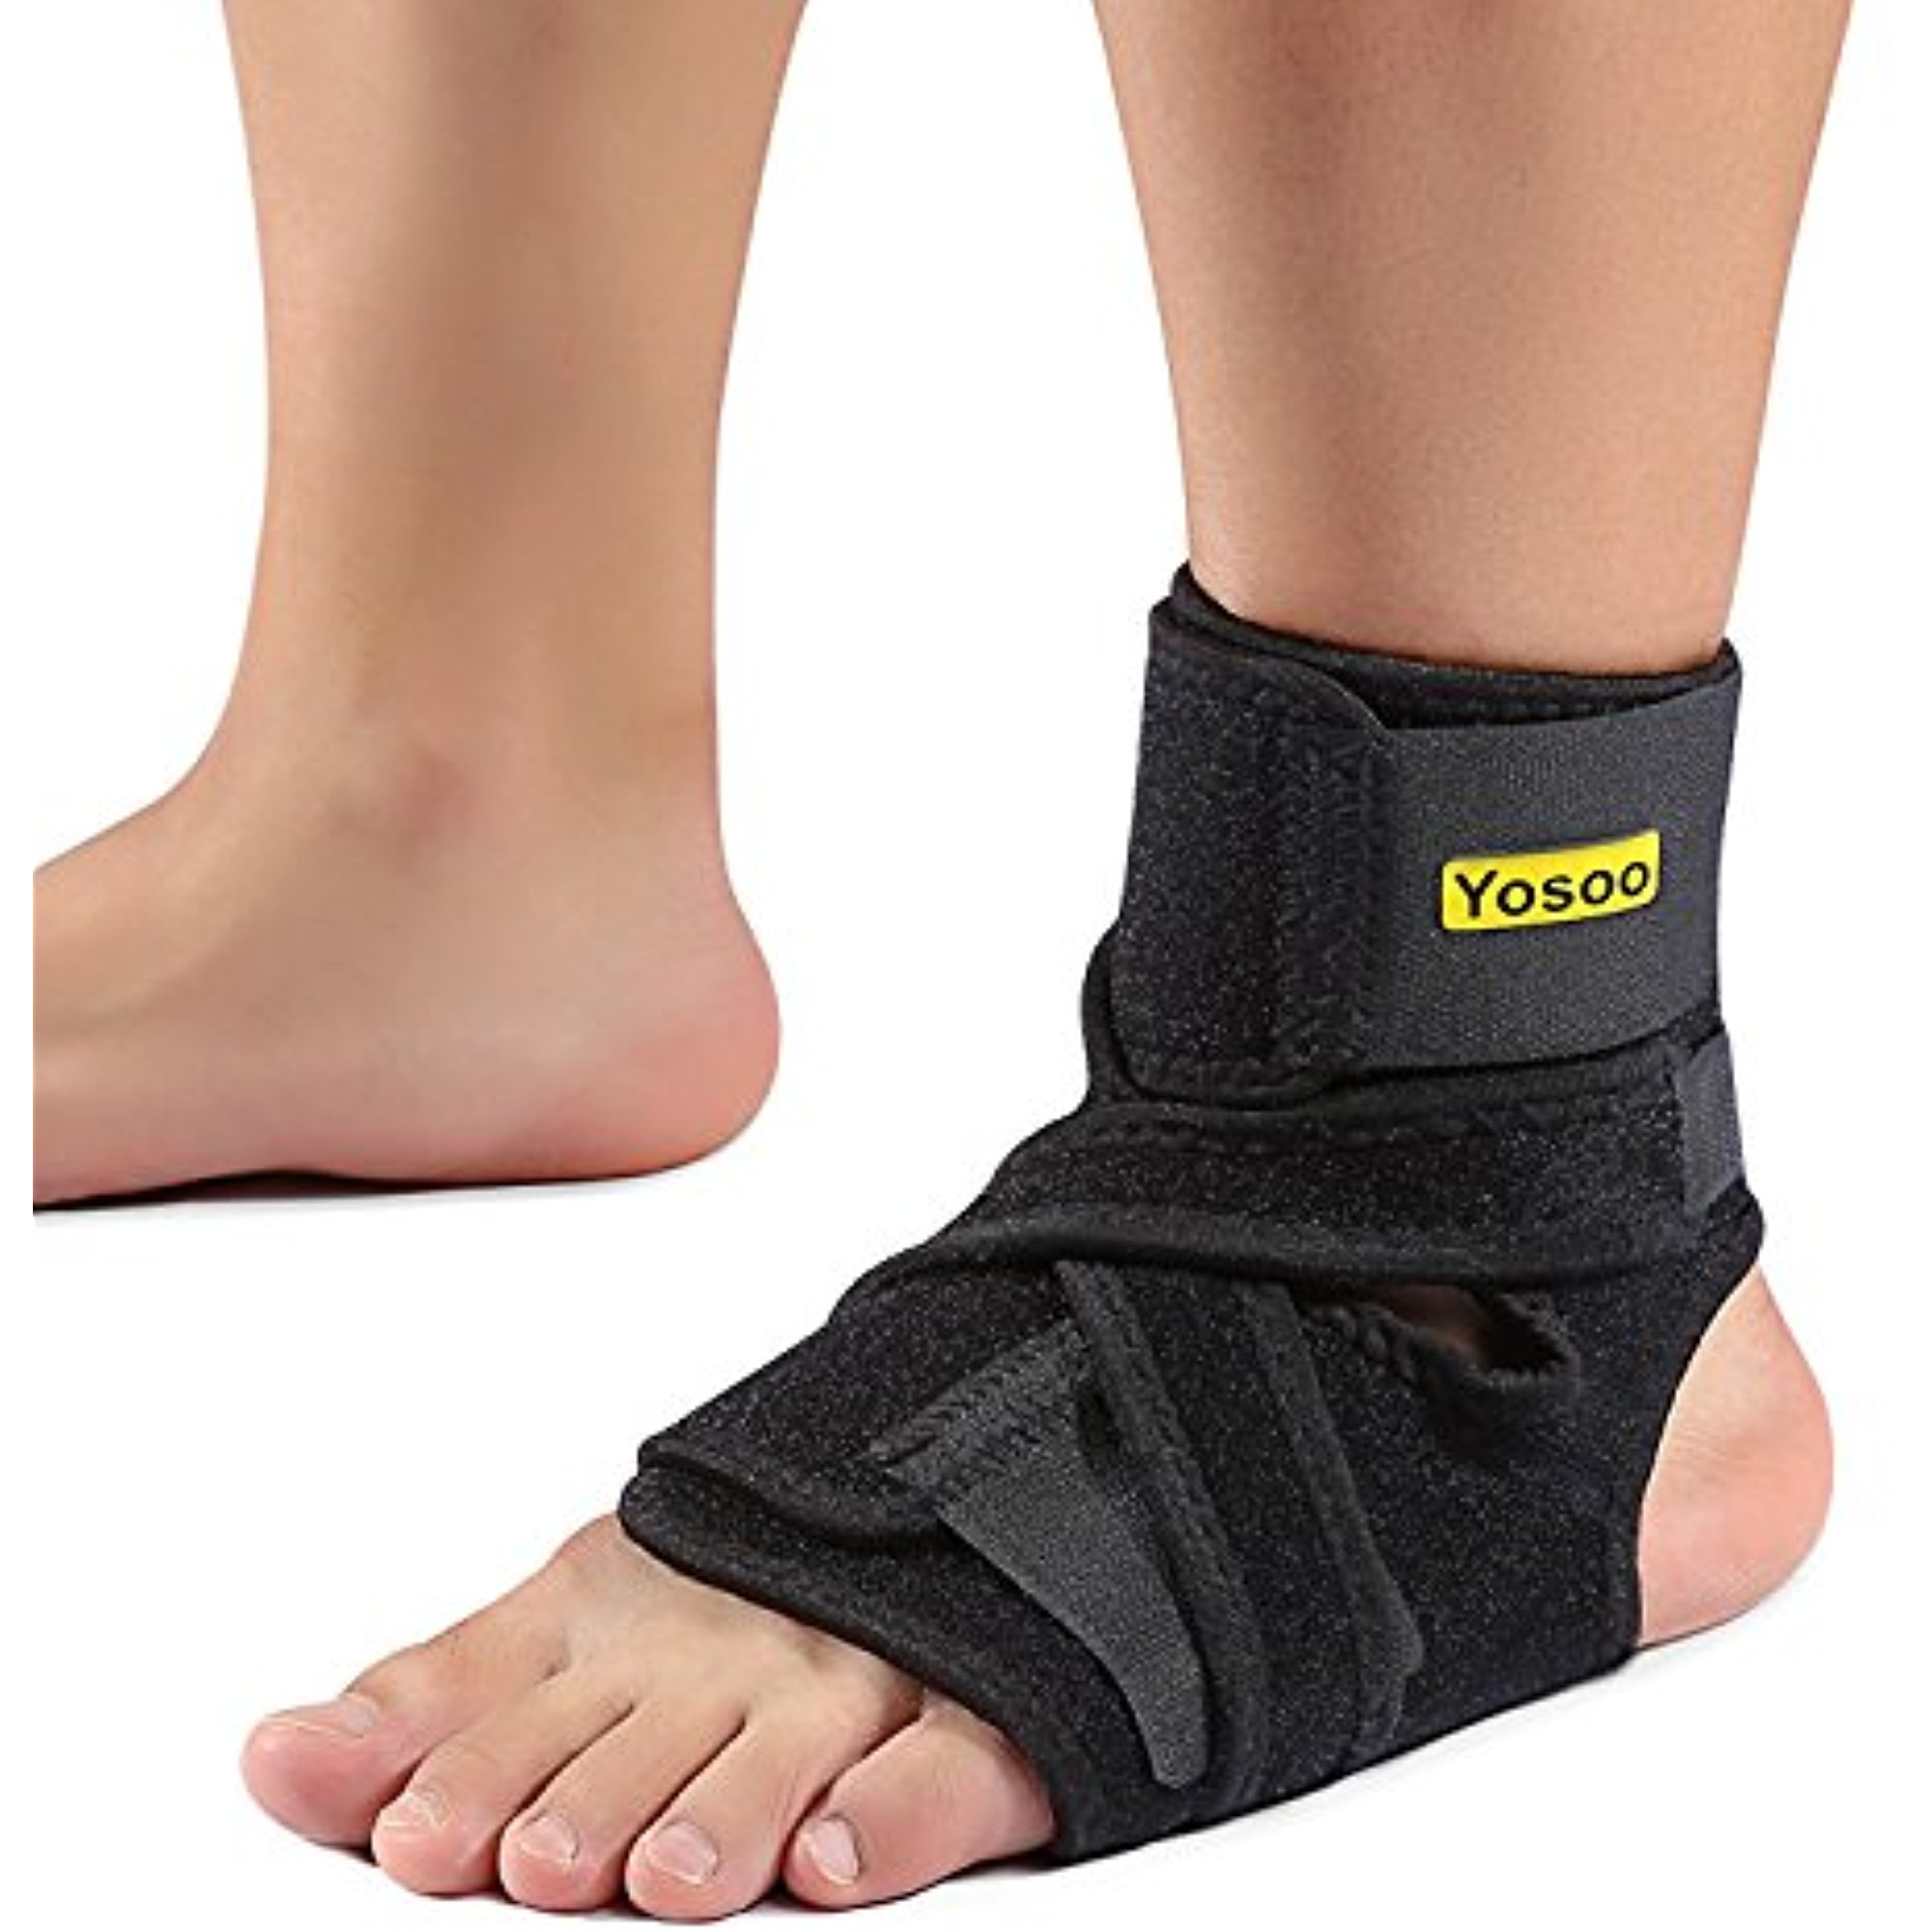 Yosoo Ankle Brace - Breathable Neoprene Adjustable Compression Ankle Support Stabilizer for Ankle Sprain Tendons, One Size, Black